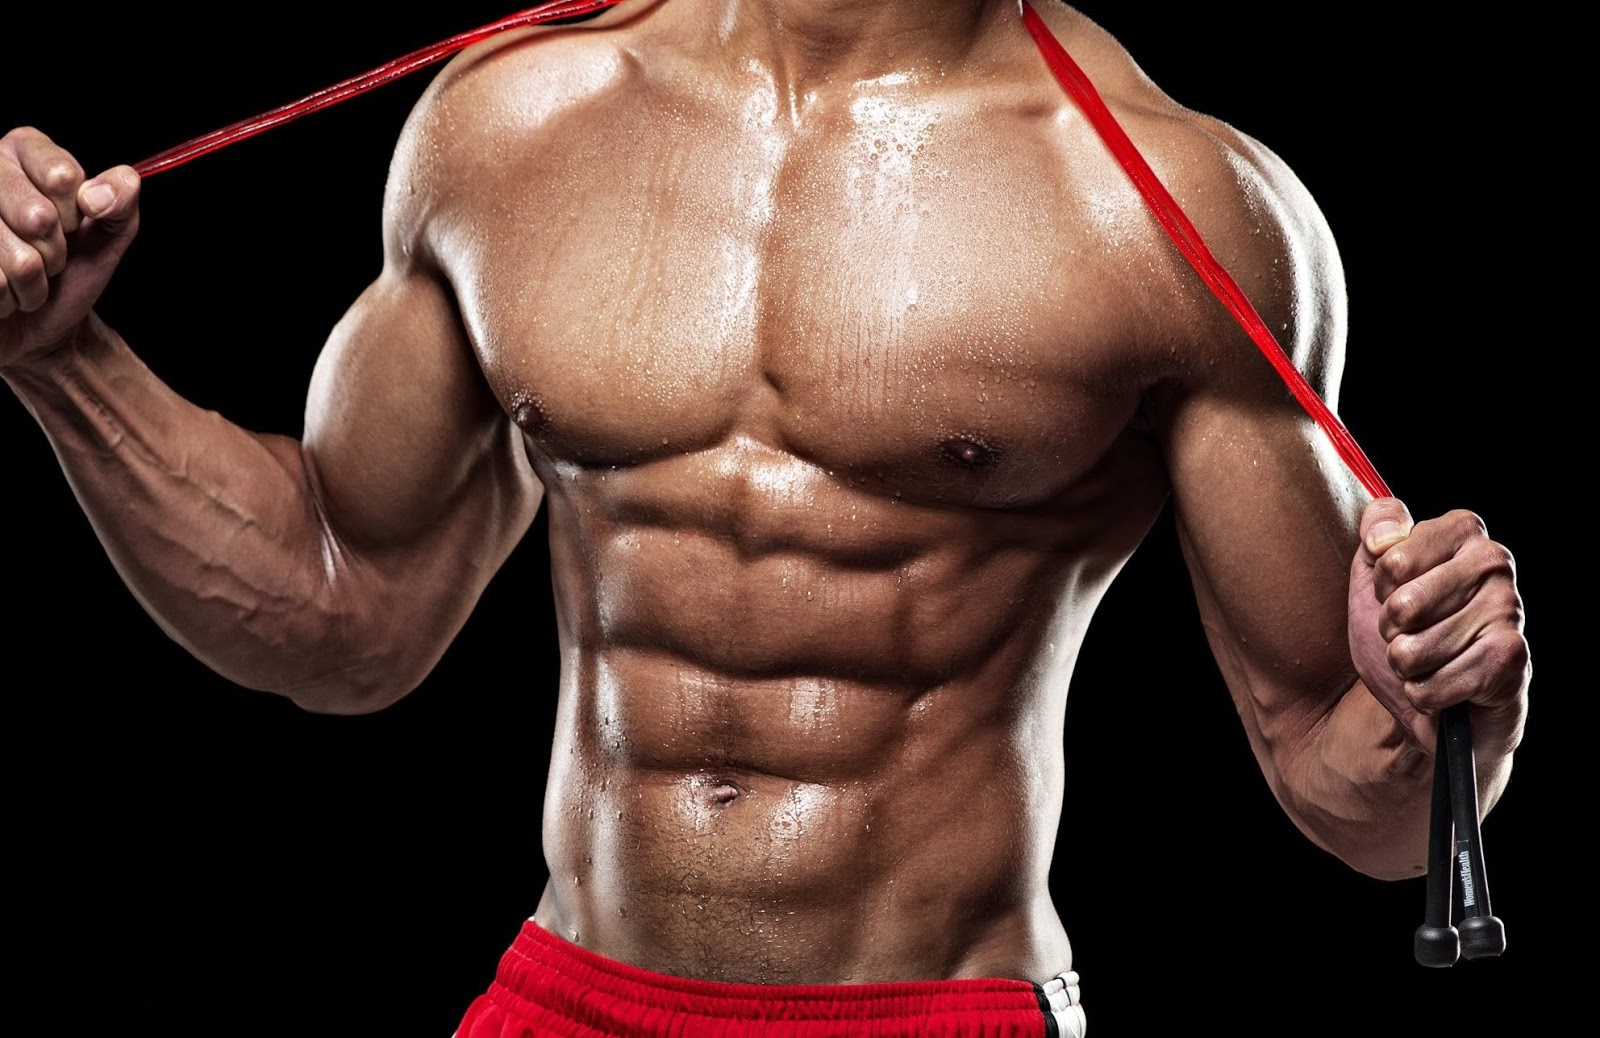 Bodybuilding: Six Pack Abs Workout - Abdomnial Muscle Anatomy